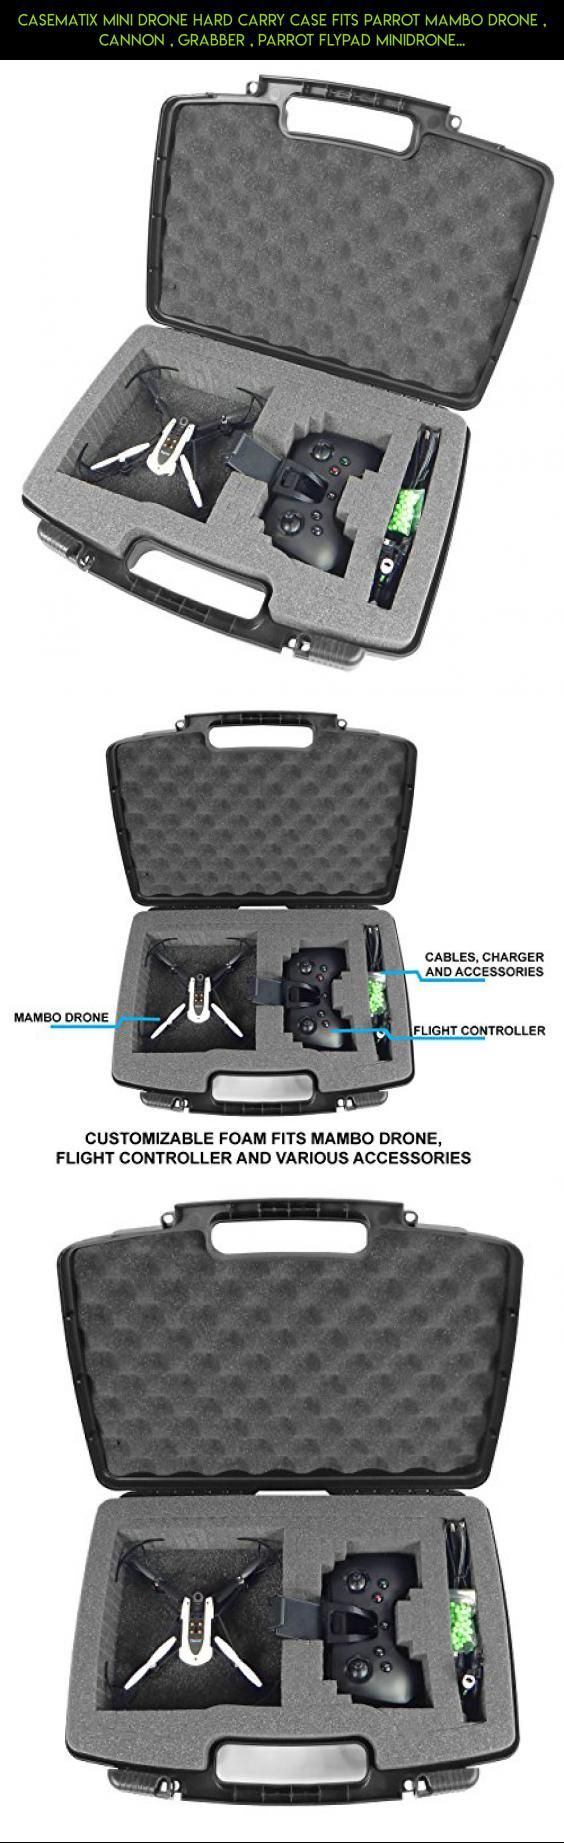 Mini Drone Hard Case Fits Parrot Mambo Drone with Mambo Drone Accessories